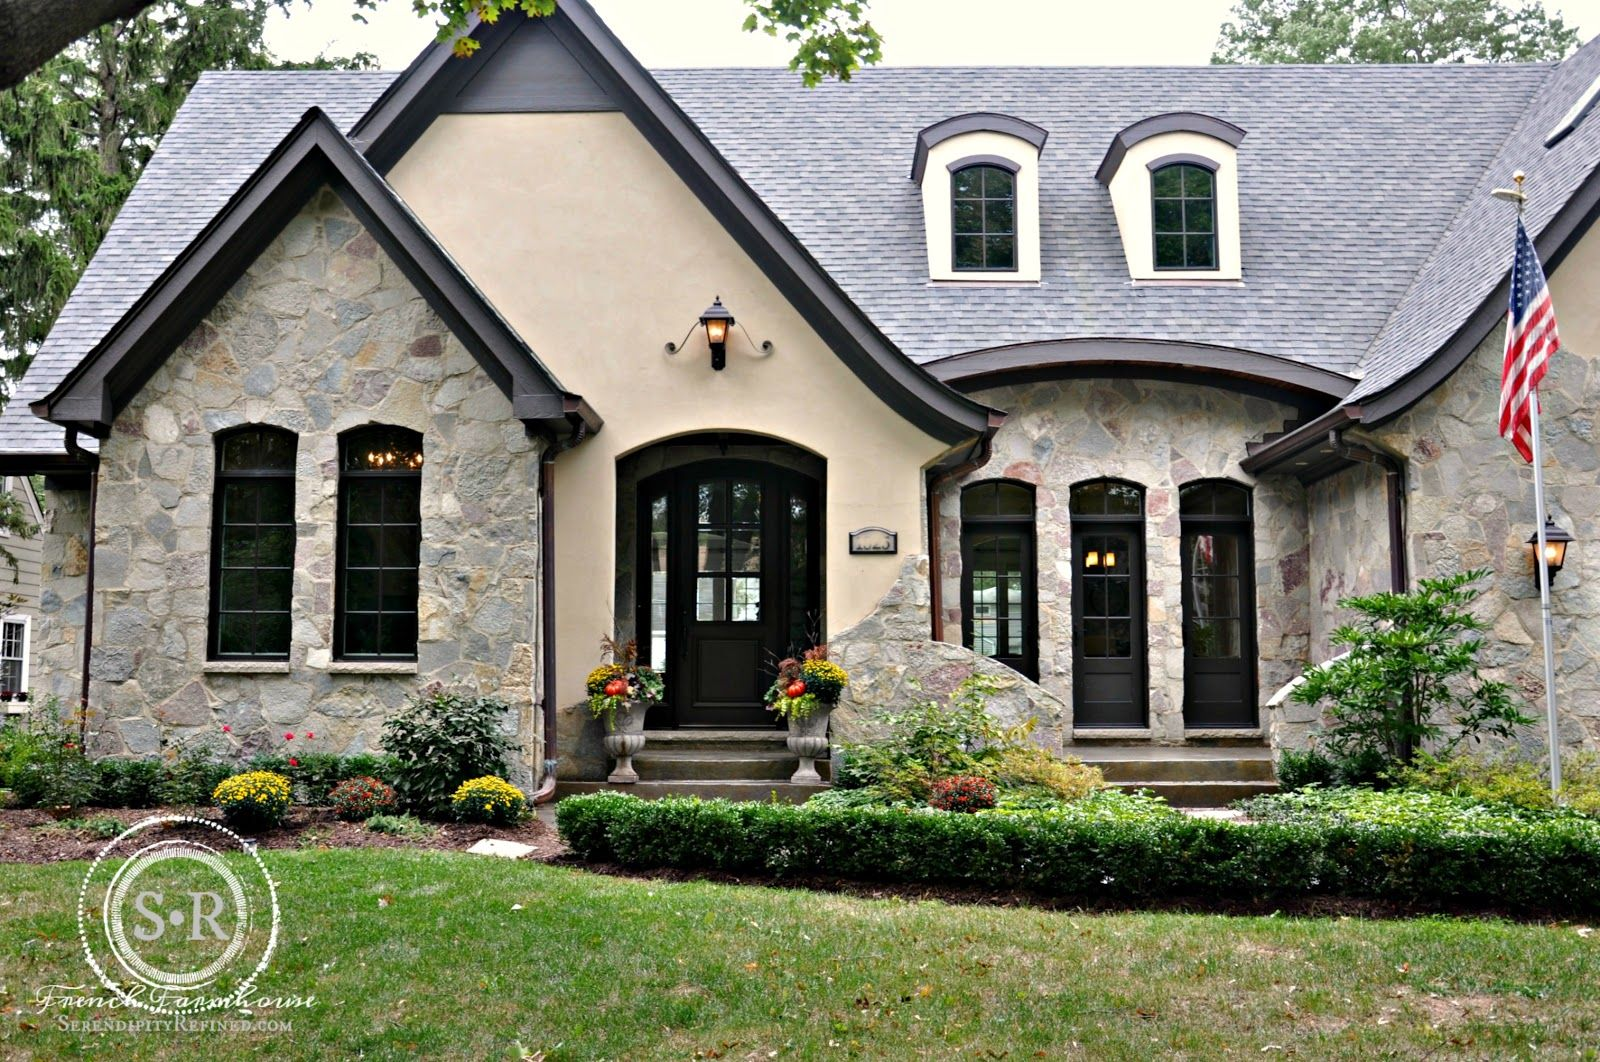 as you can see from these photos their home is a gorgeous custom stone grey stone and stucco exterior